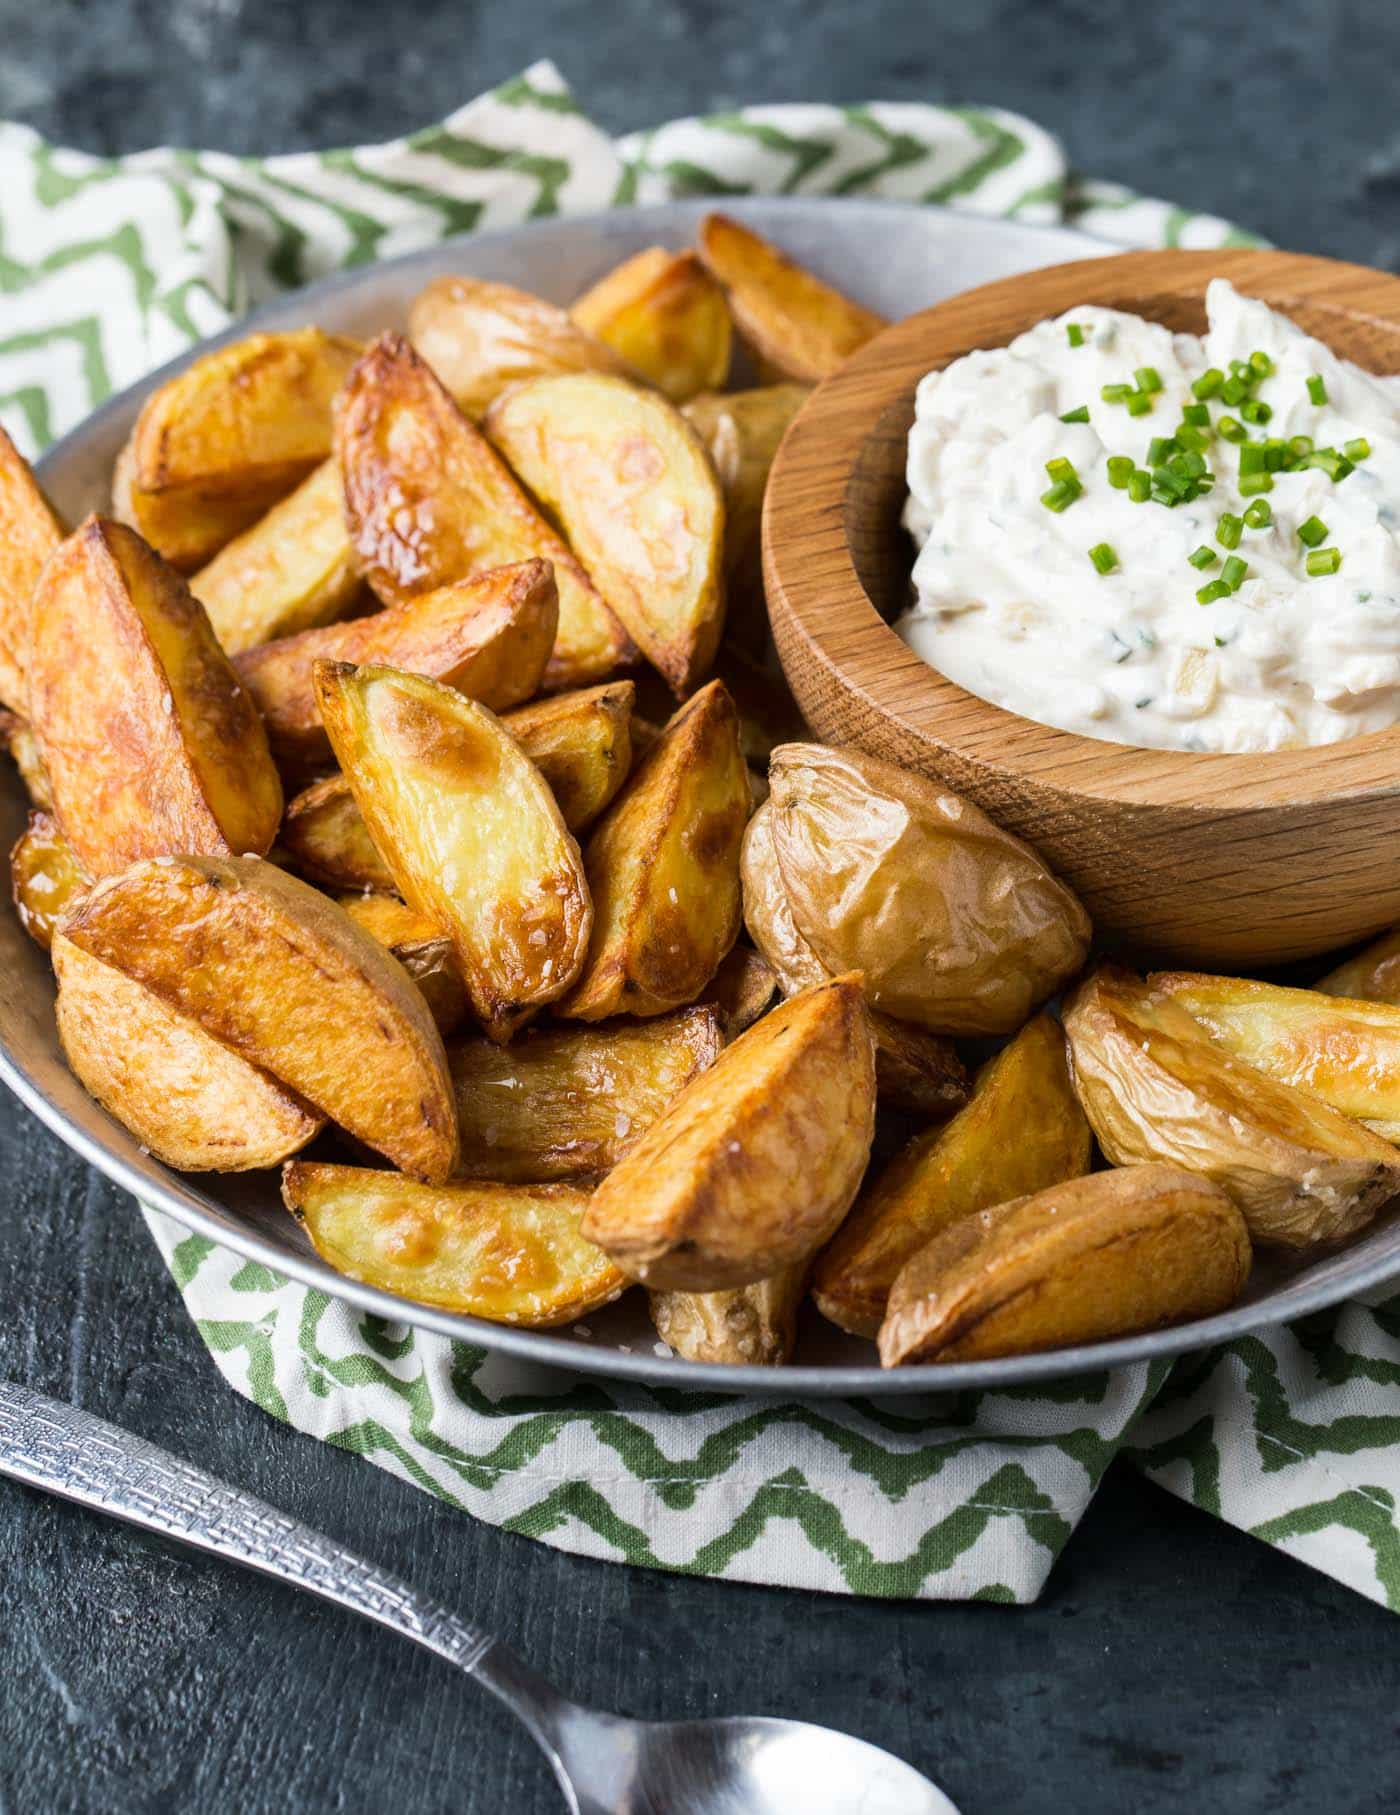 Homemade dip makes these Roasted Potatoes with Sour Cream and Onion Dip the hit of any appetizer spread.